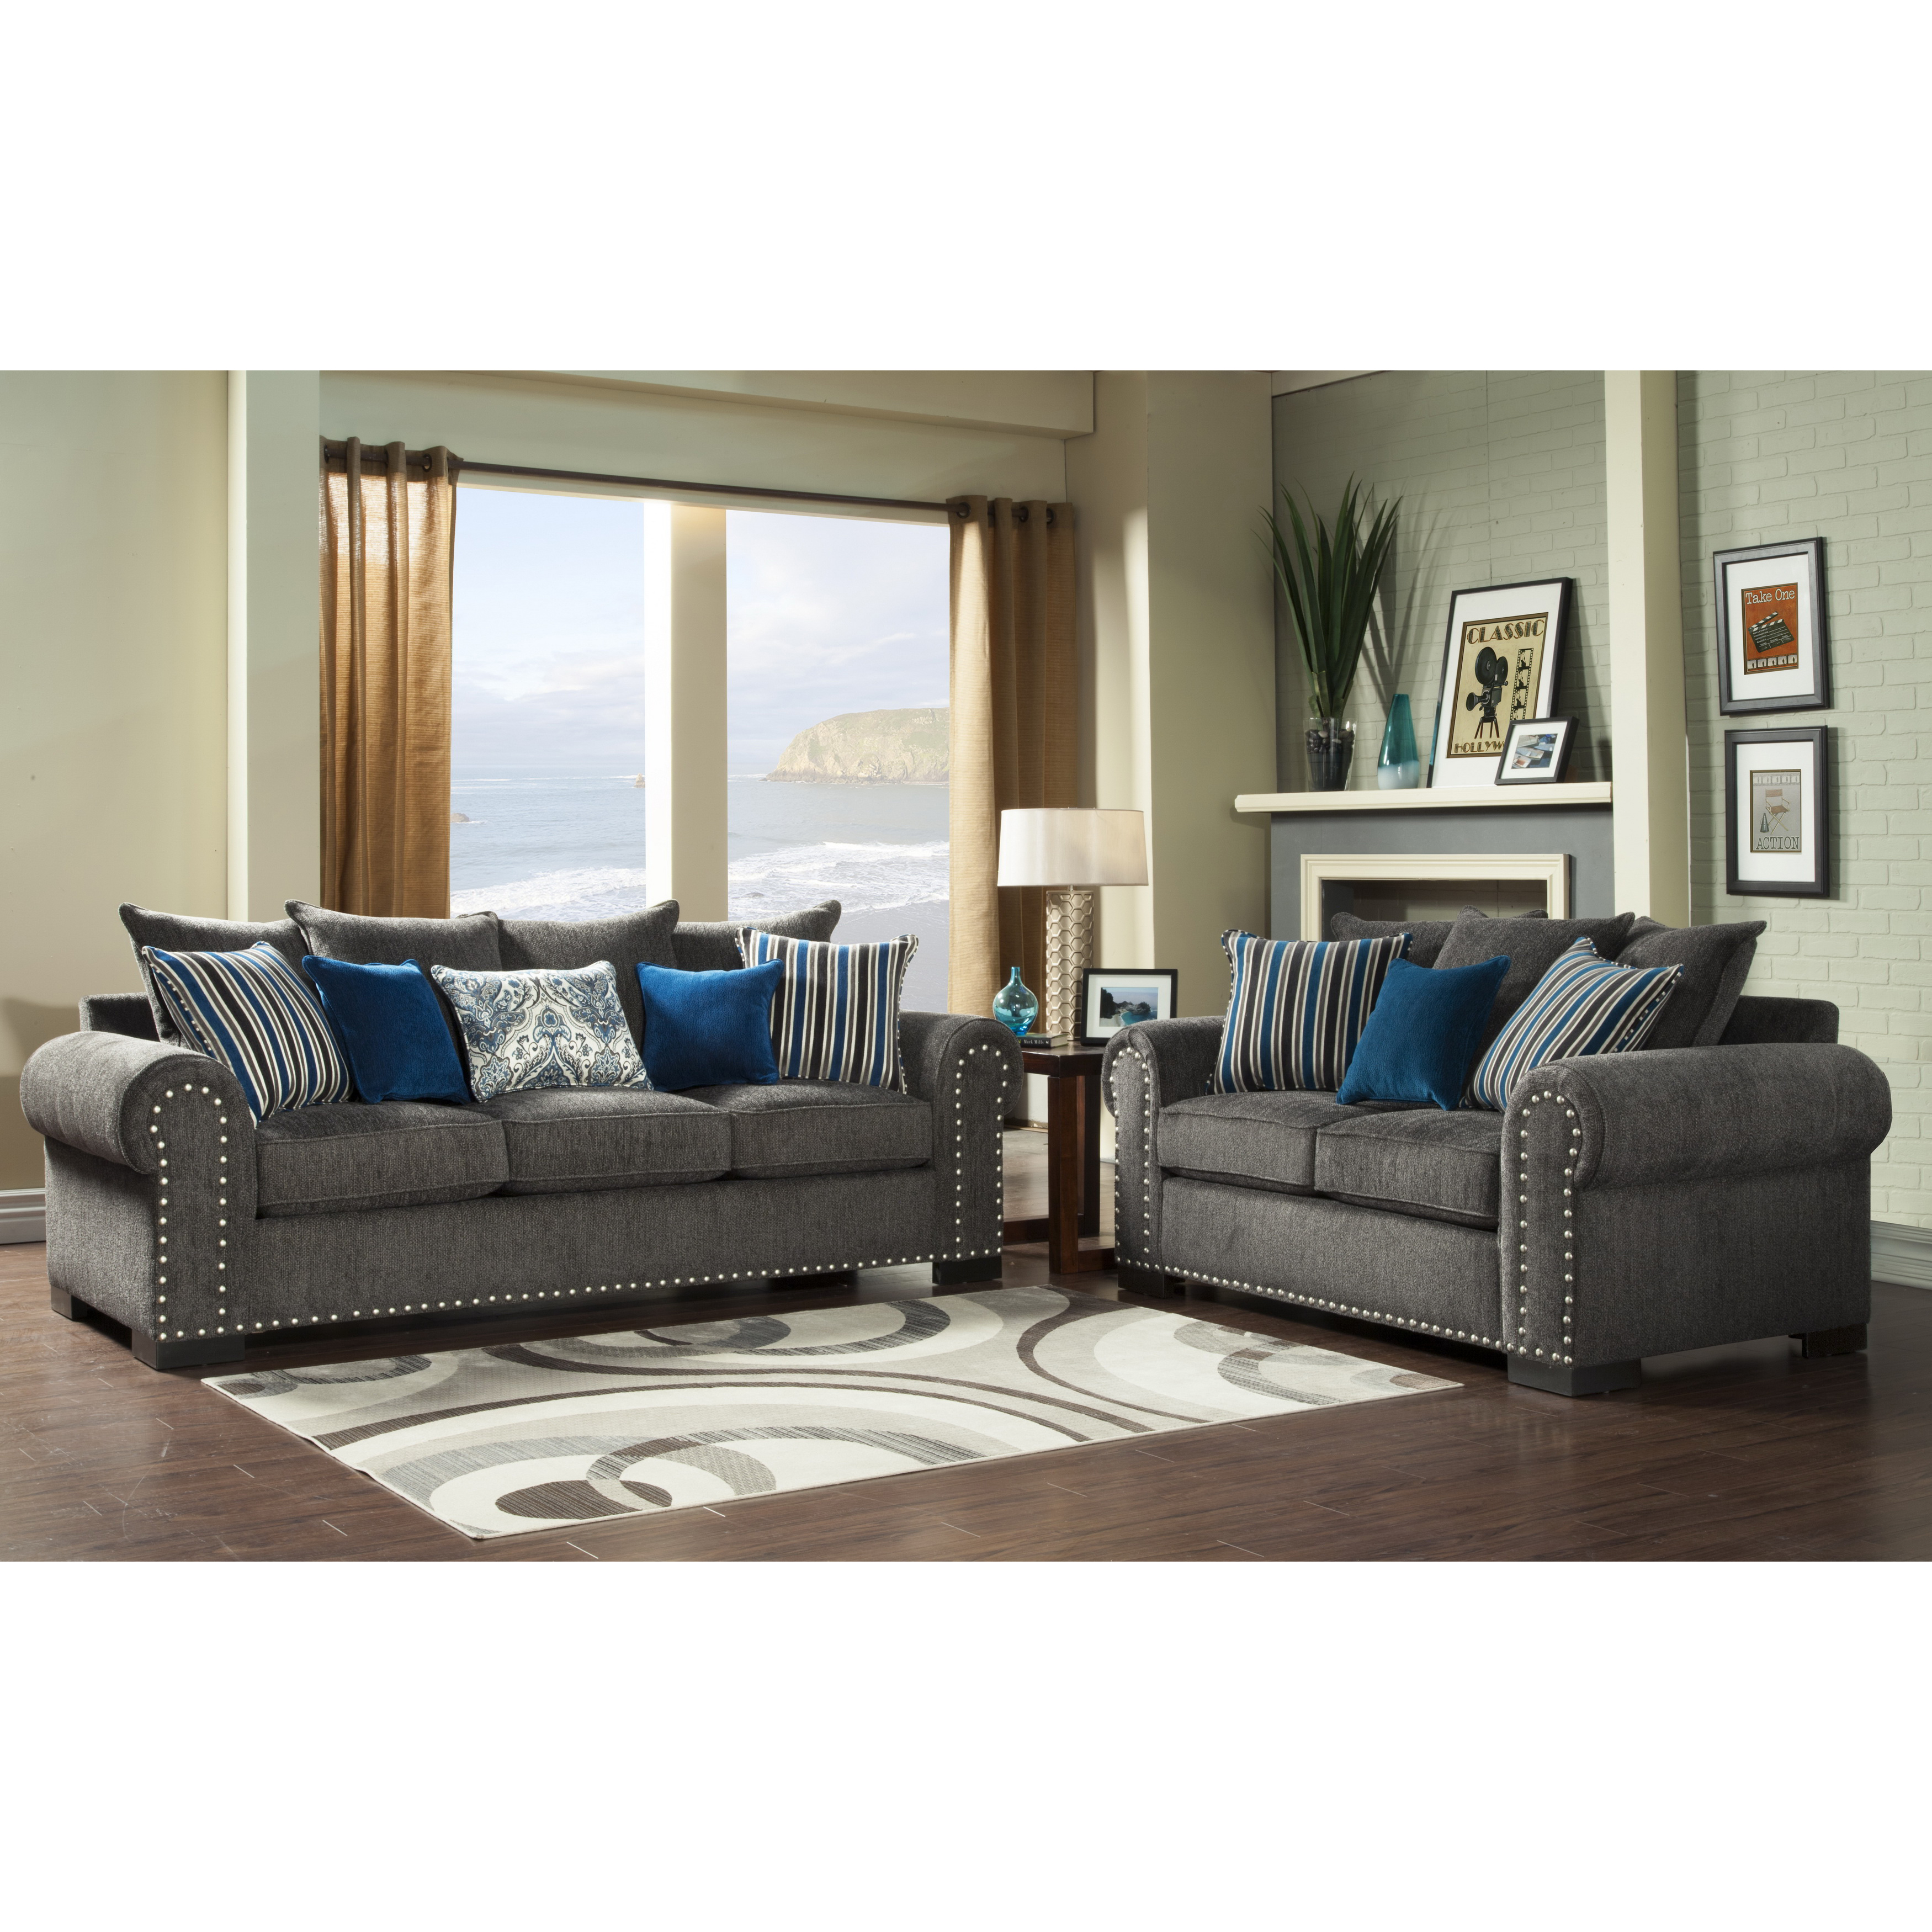 Fresh Blue Gray Couch 51 For Your Modern Sofa Ideas with Blue Gray Couch